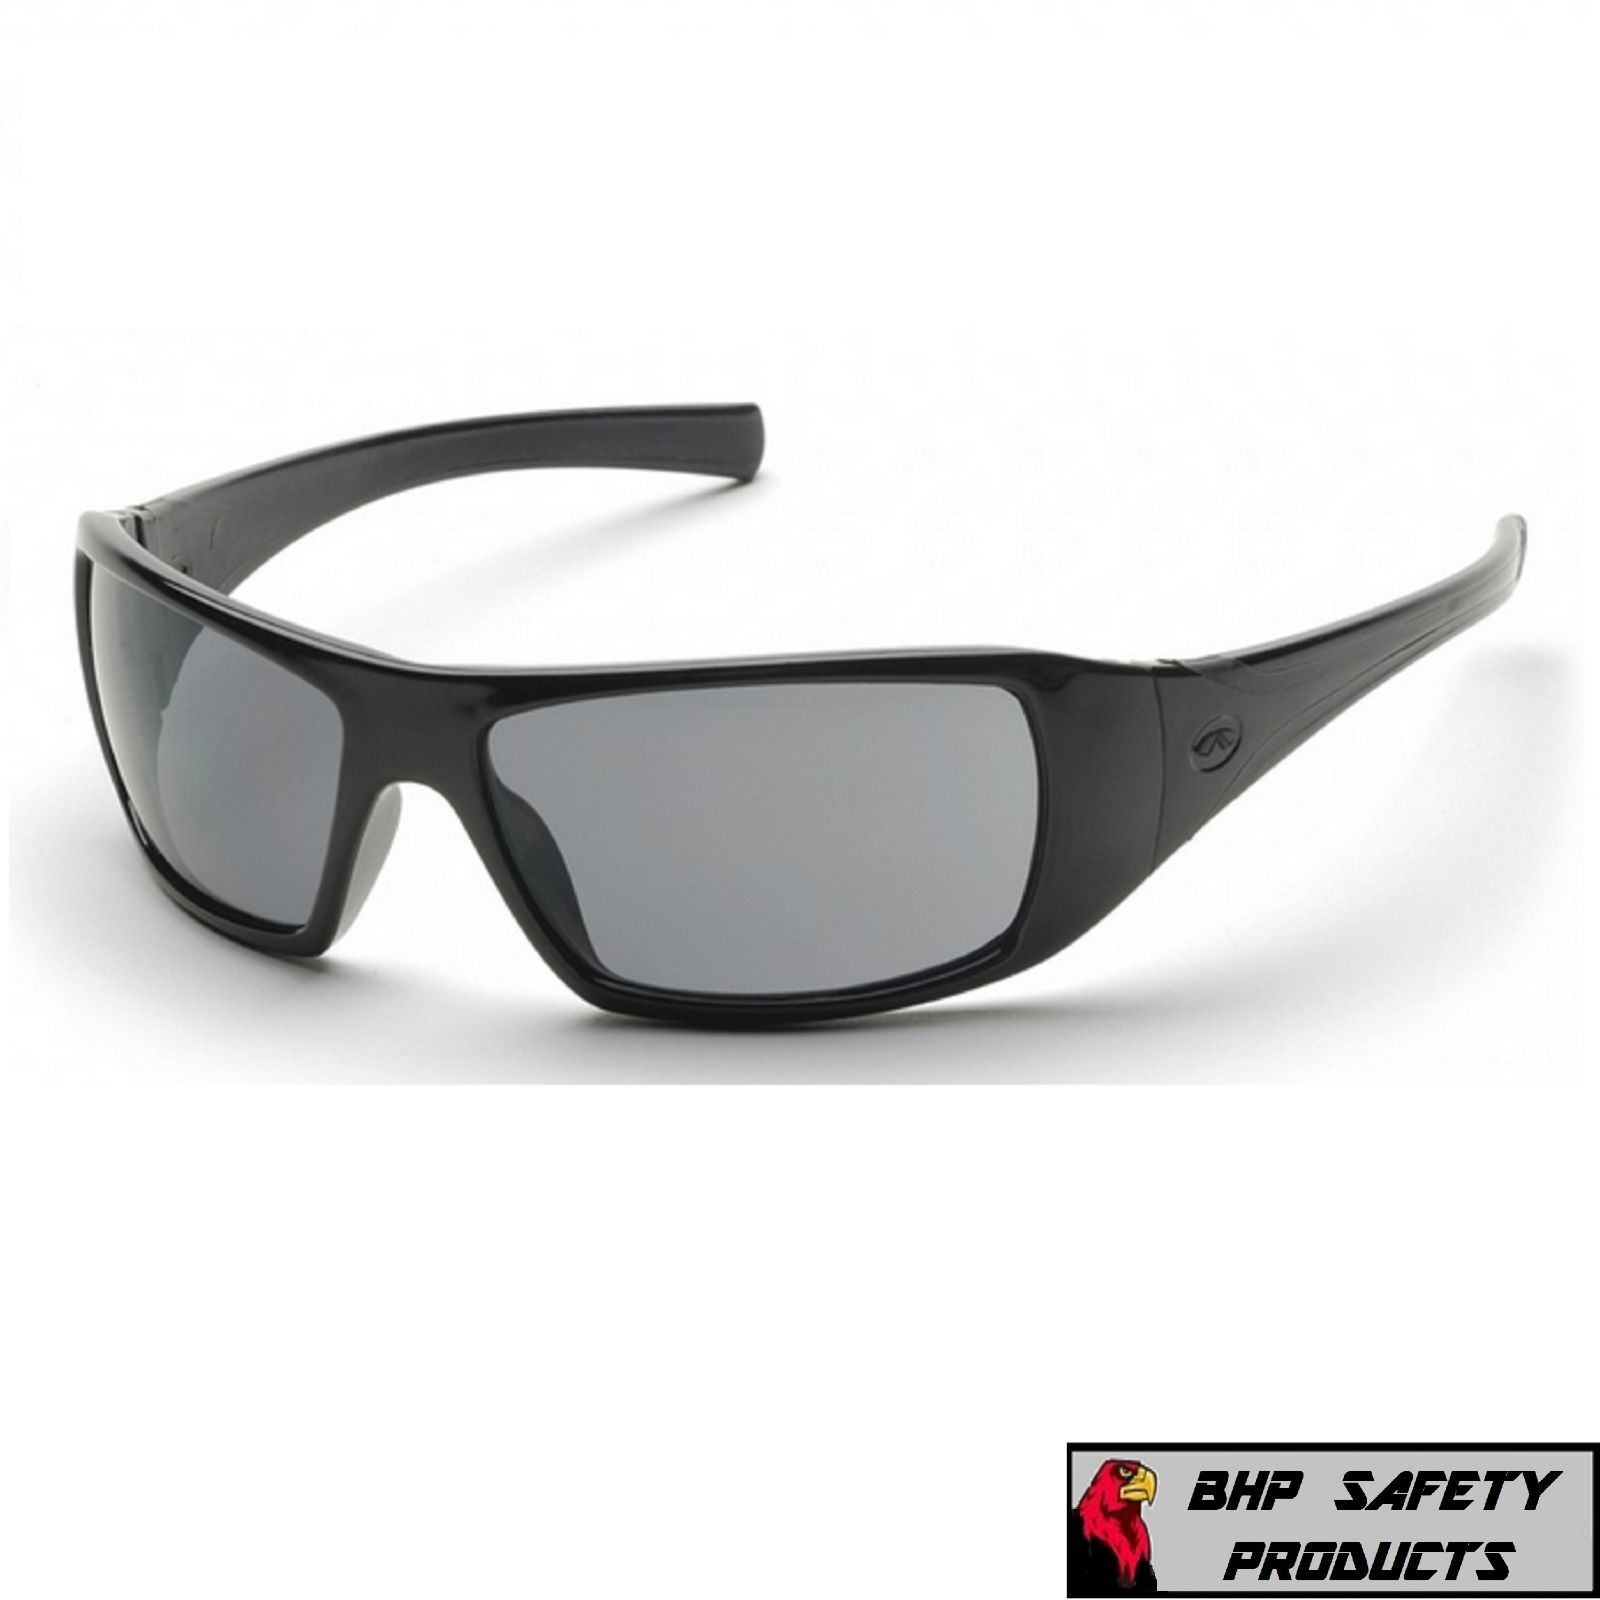 PYRAMEX GOLIATH SAFETY GLASSES MOTORCYCLE SPORT WORK SUNGLASSES Z87+ (1 PAIR) Gray Lens/ Black Frame SB5620D